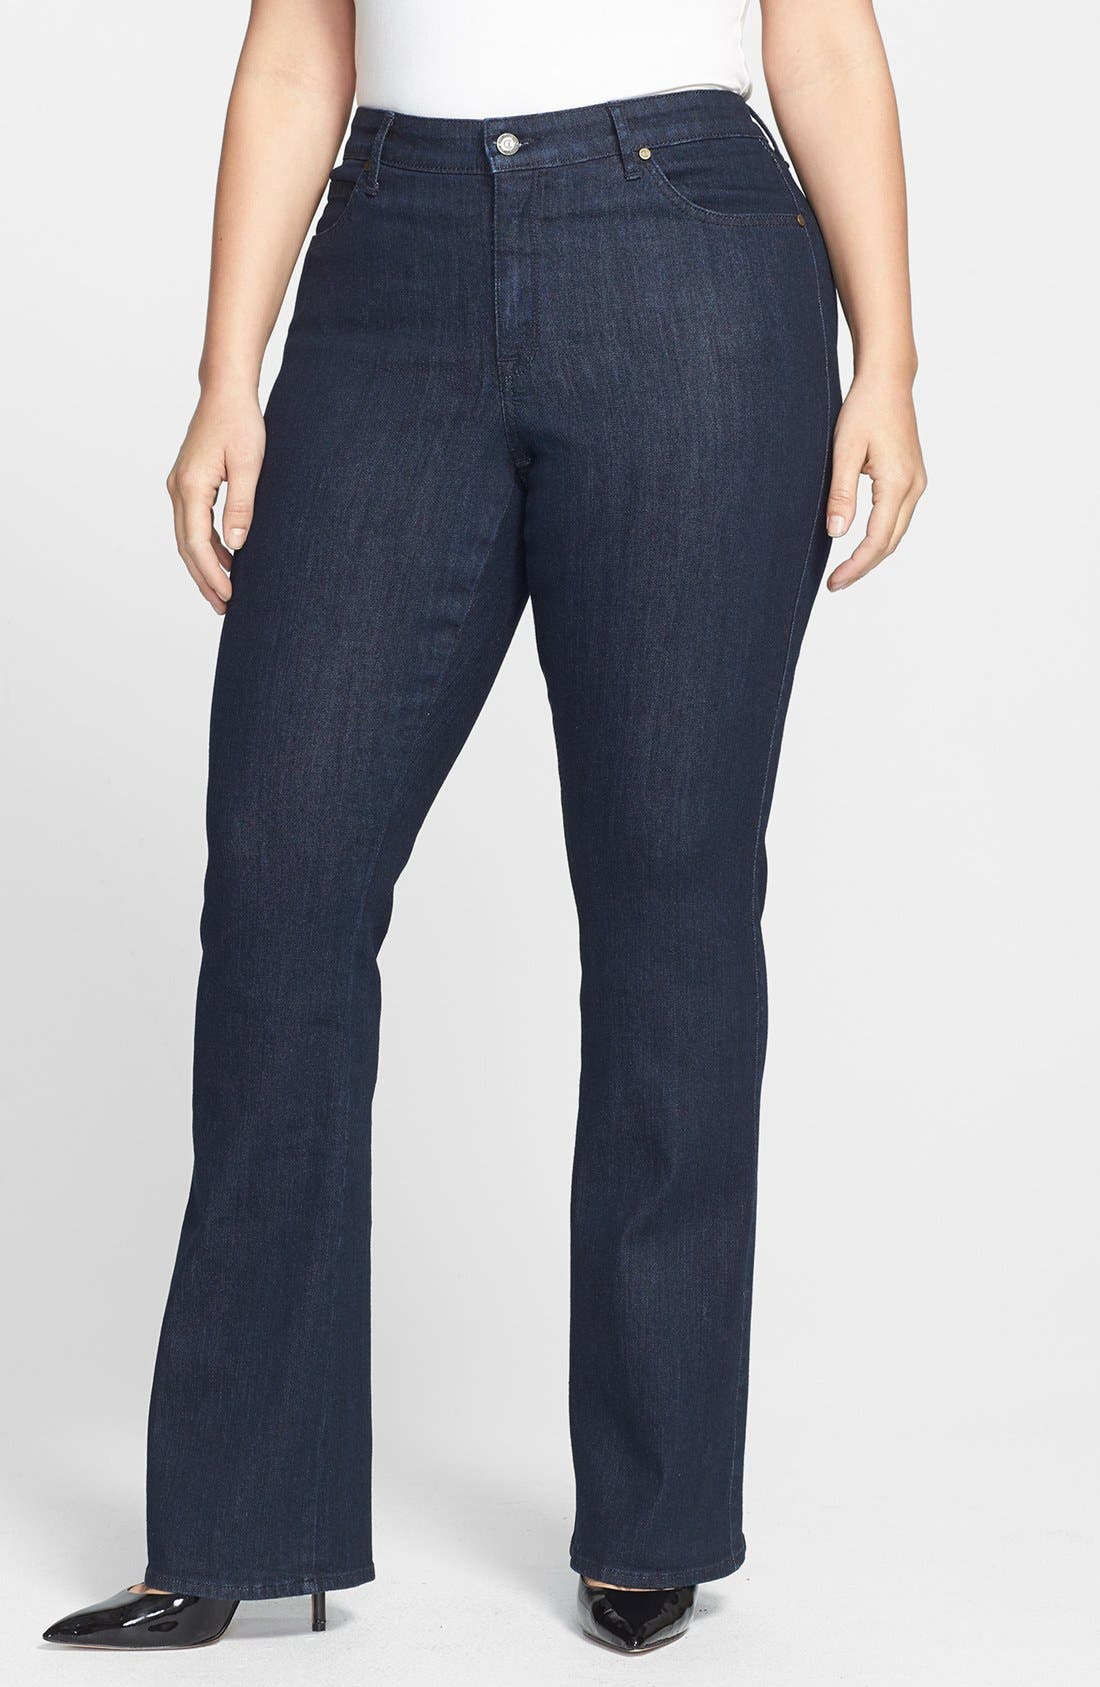 Alternate Image 1 Selected - CJ by Cookie Johnson 'Grace' Bootcut Stretch Jeans (Plus Size)